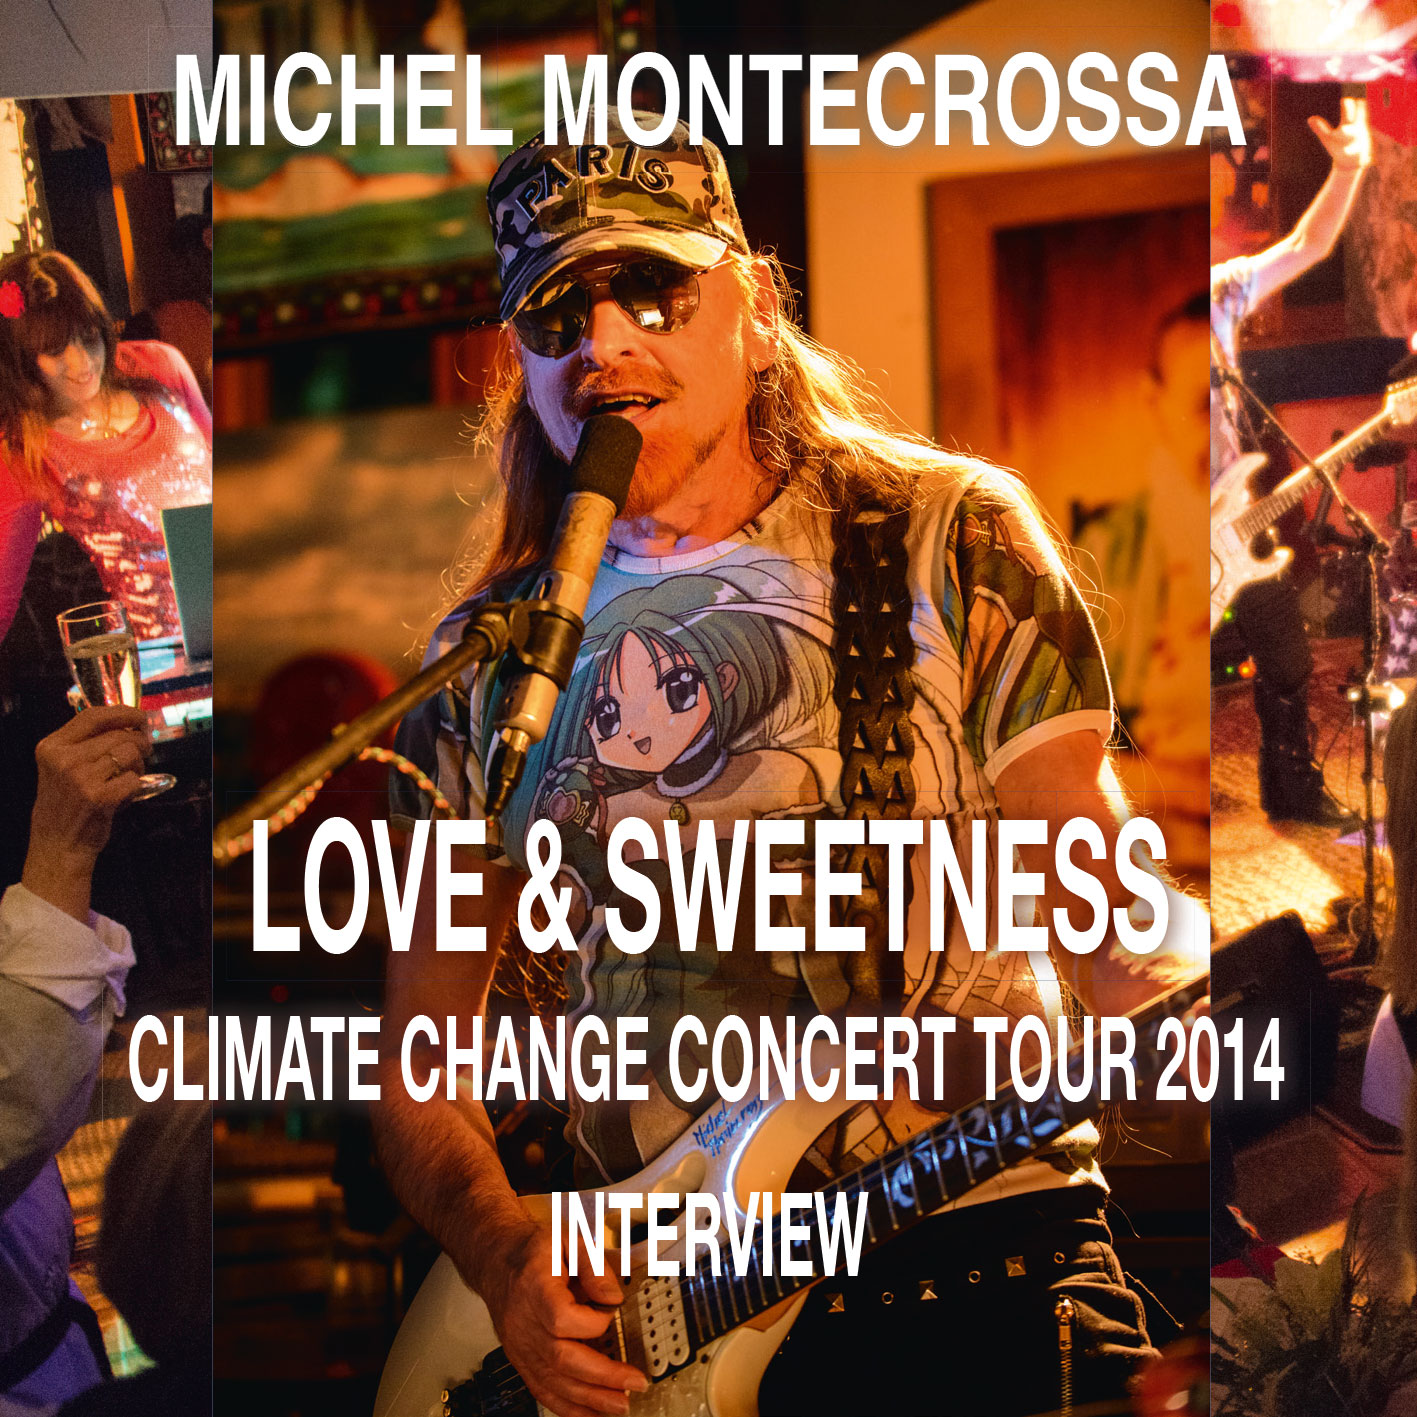 Love & Sweetness Interview